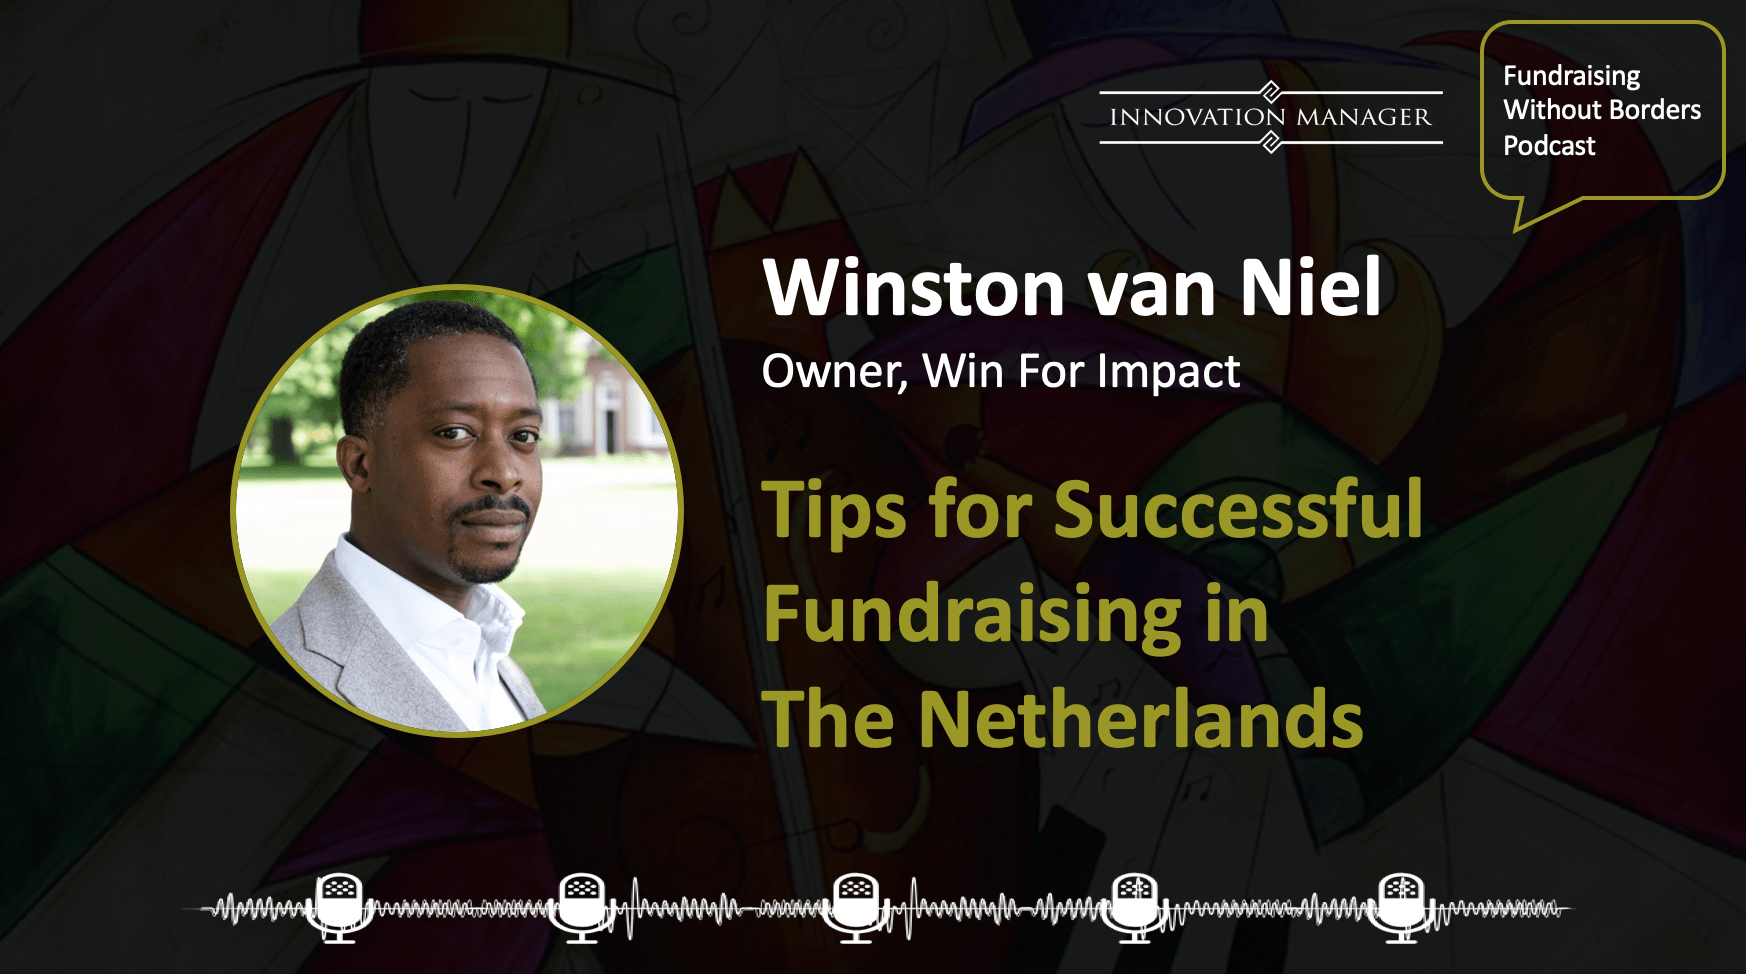 Tips for Successful Fundraising in the Netherlands